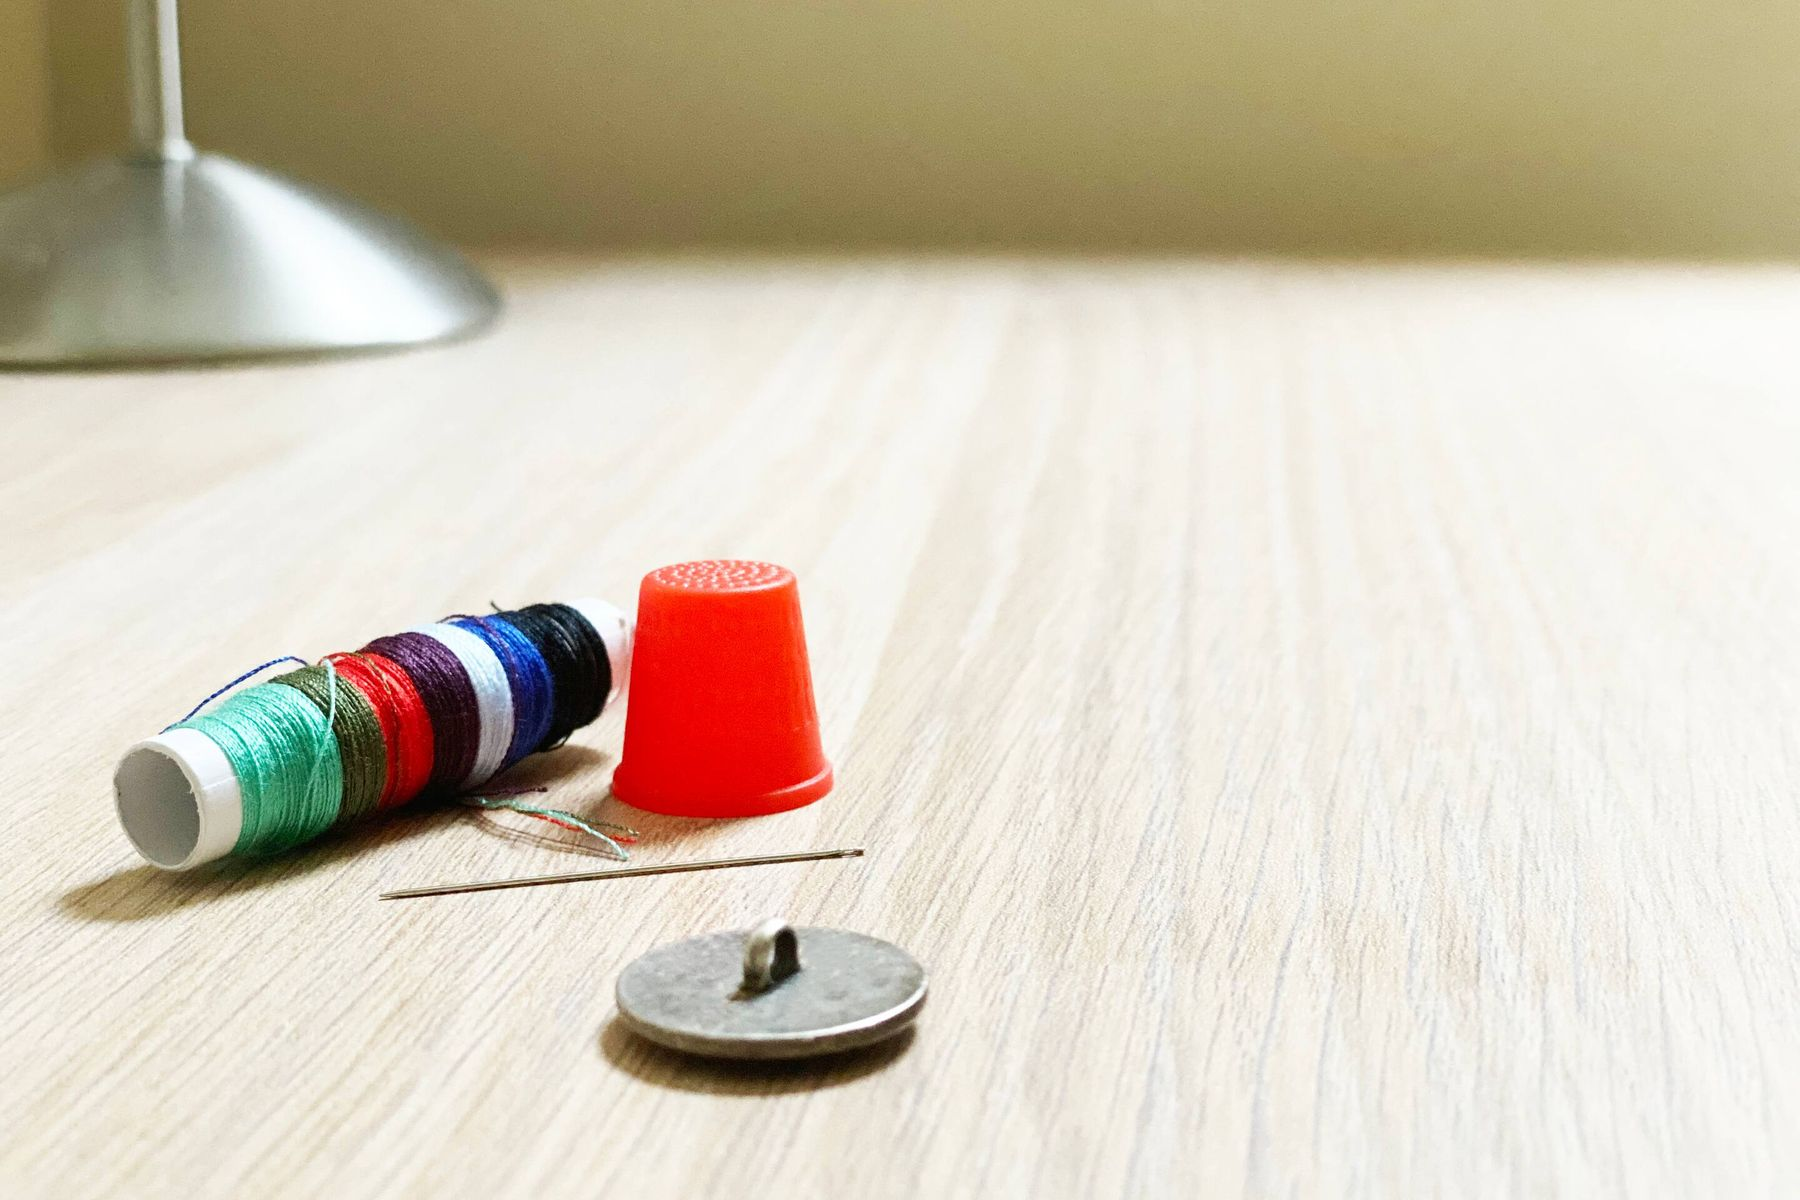 A shank button, with a needle, spool of thread and thimble in the background